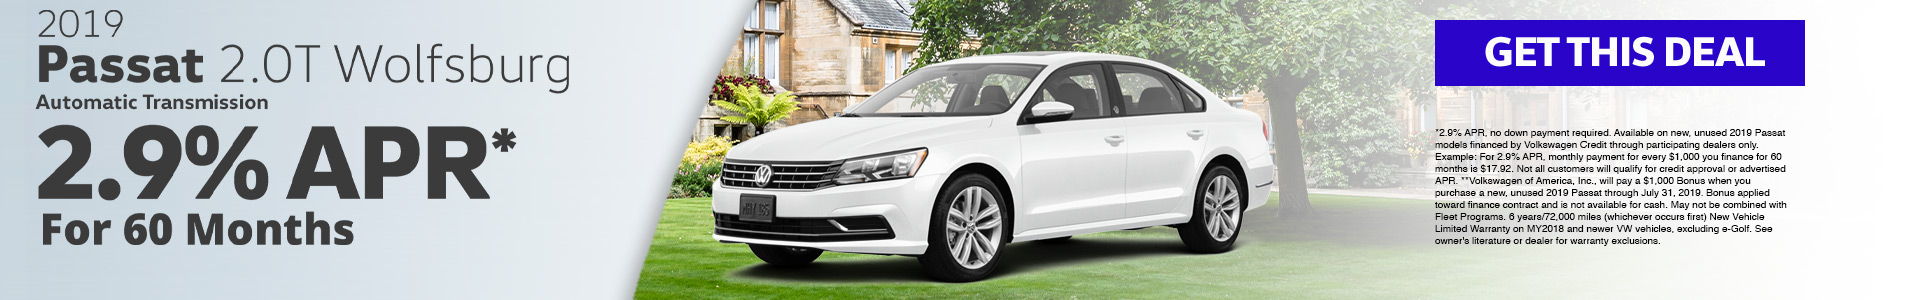 2019 Passat 2.9% APR* for 60 months